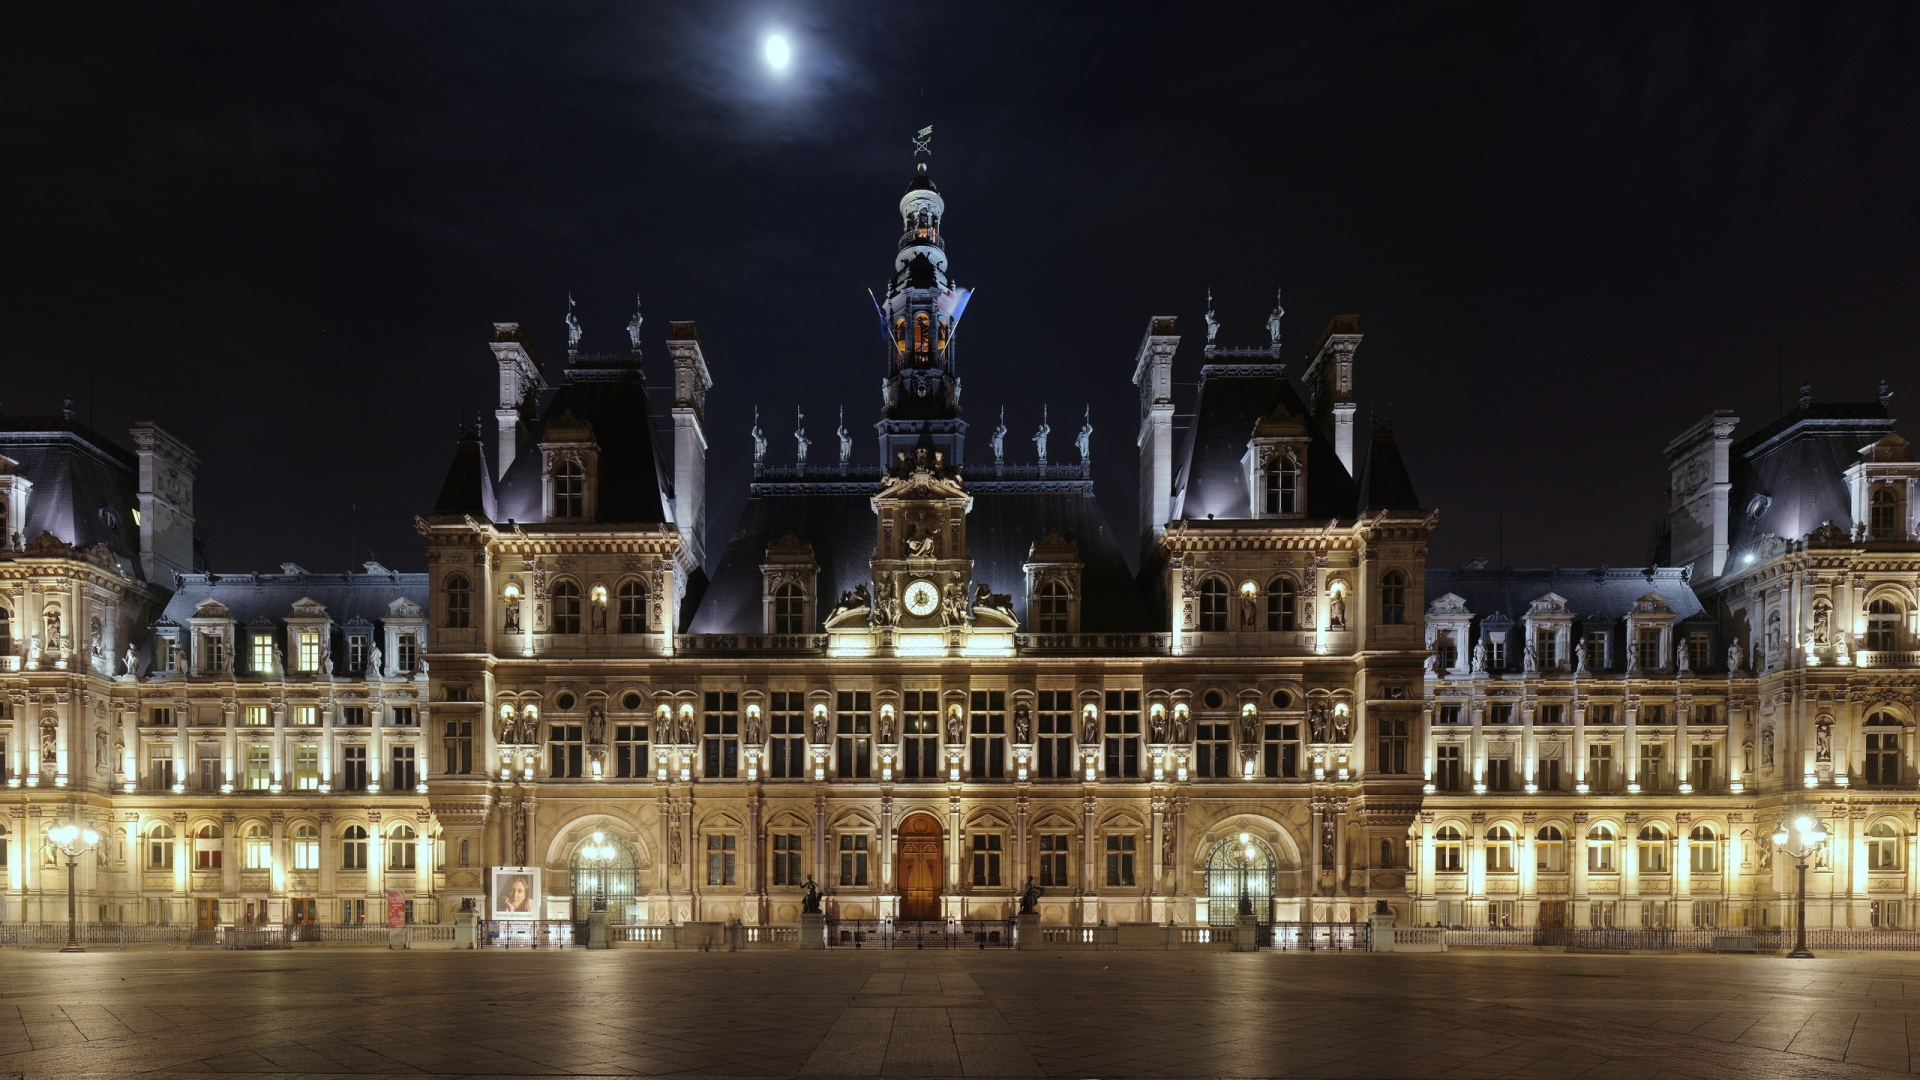 Download Hd Wallpapers Of Audi Cars Beautiful Hotel De Ville From Paris In Night